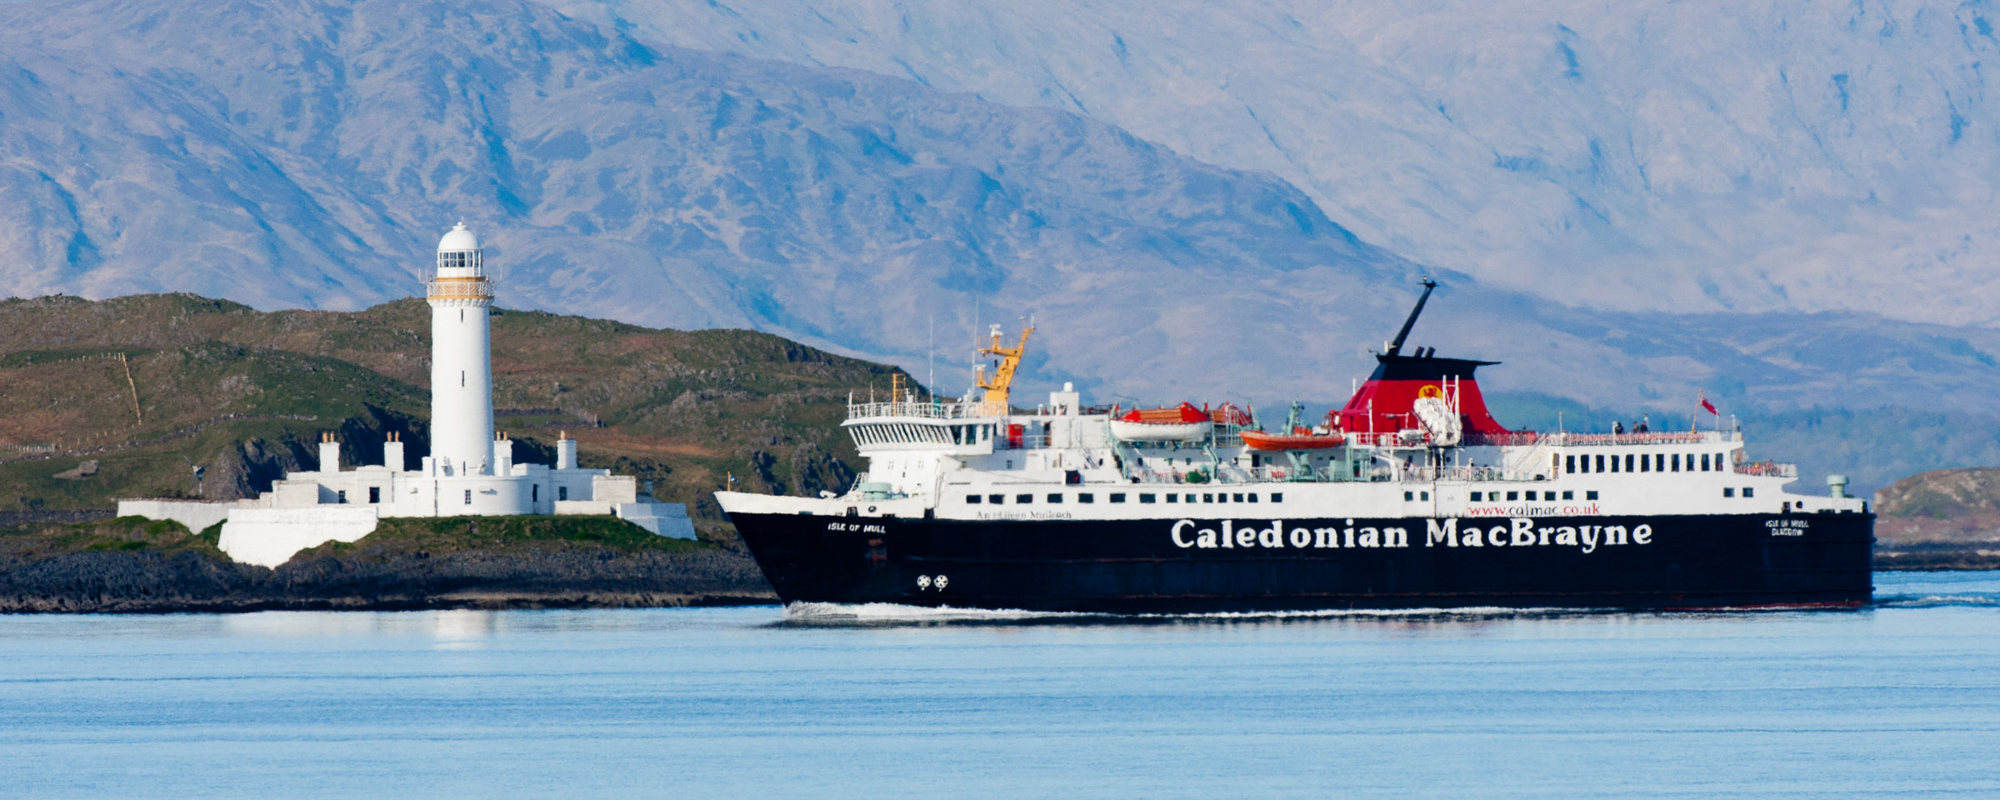 The Isle of Mull Ferry passing Lismore on the sailing to Mull